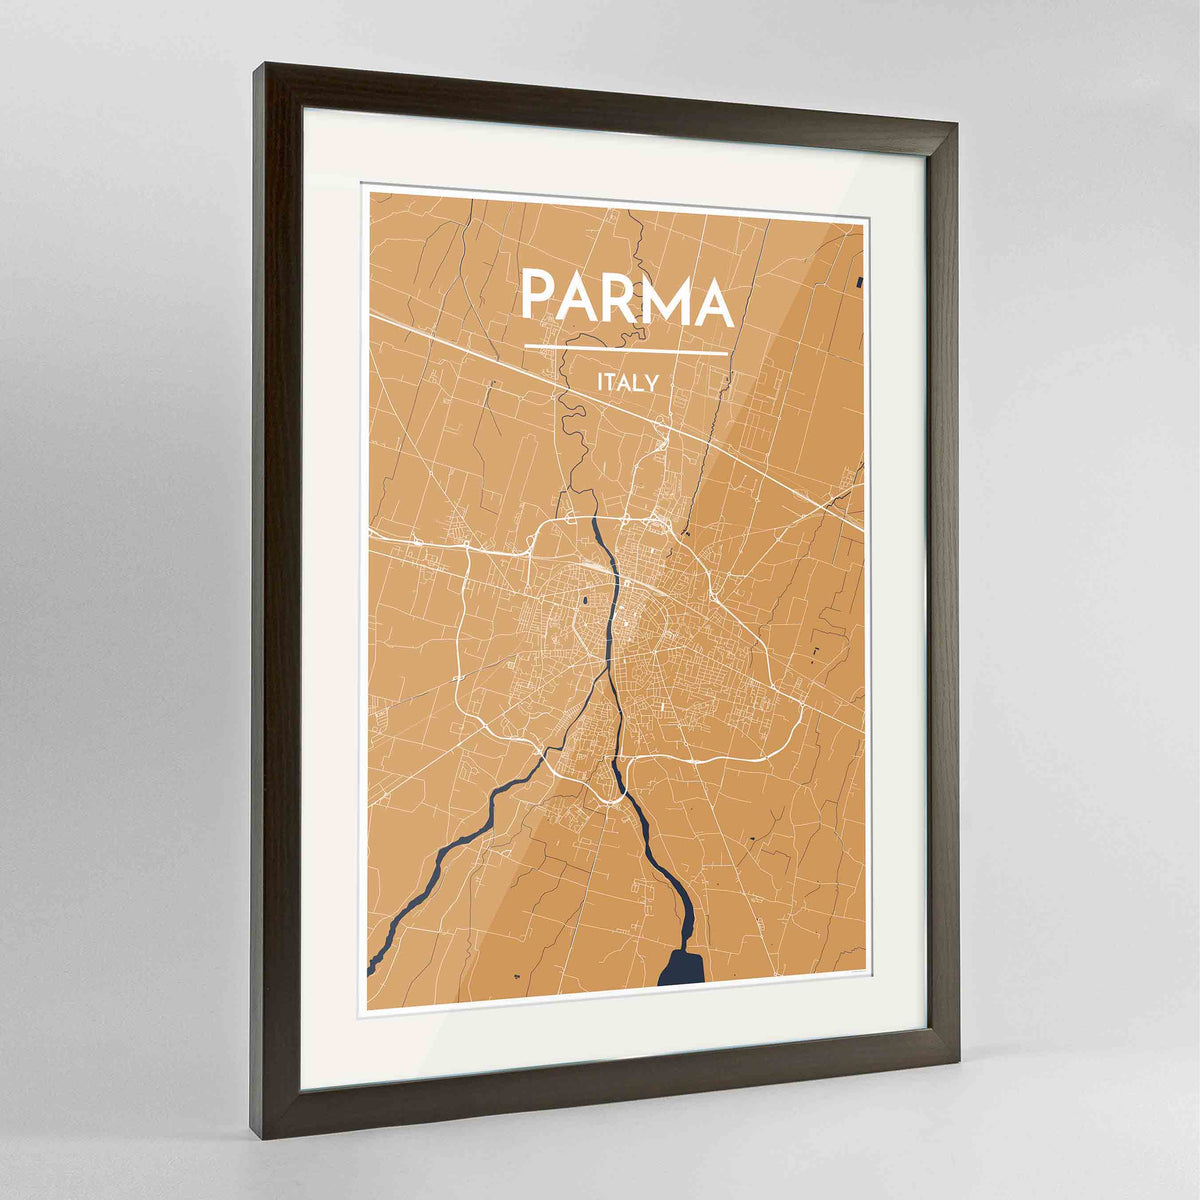 "Framed Parma Map Art Print 24x36"" Contemporary Walnut frame Point Two Design Group"